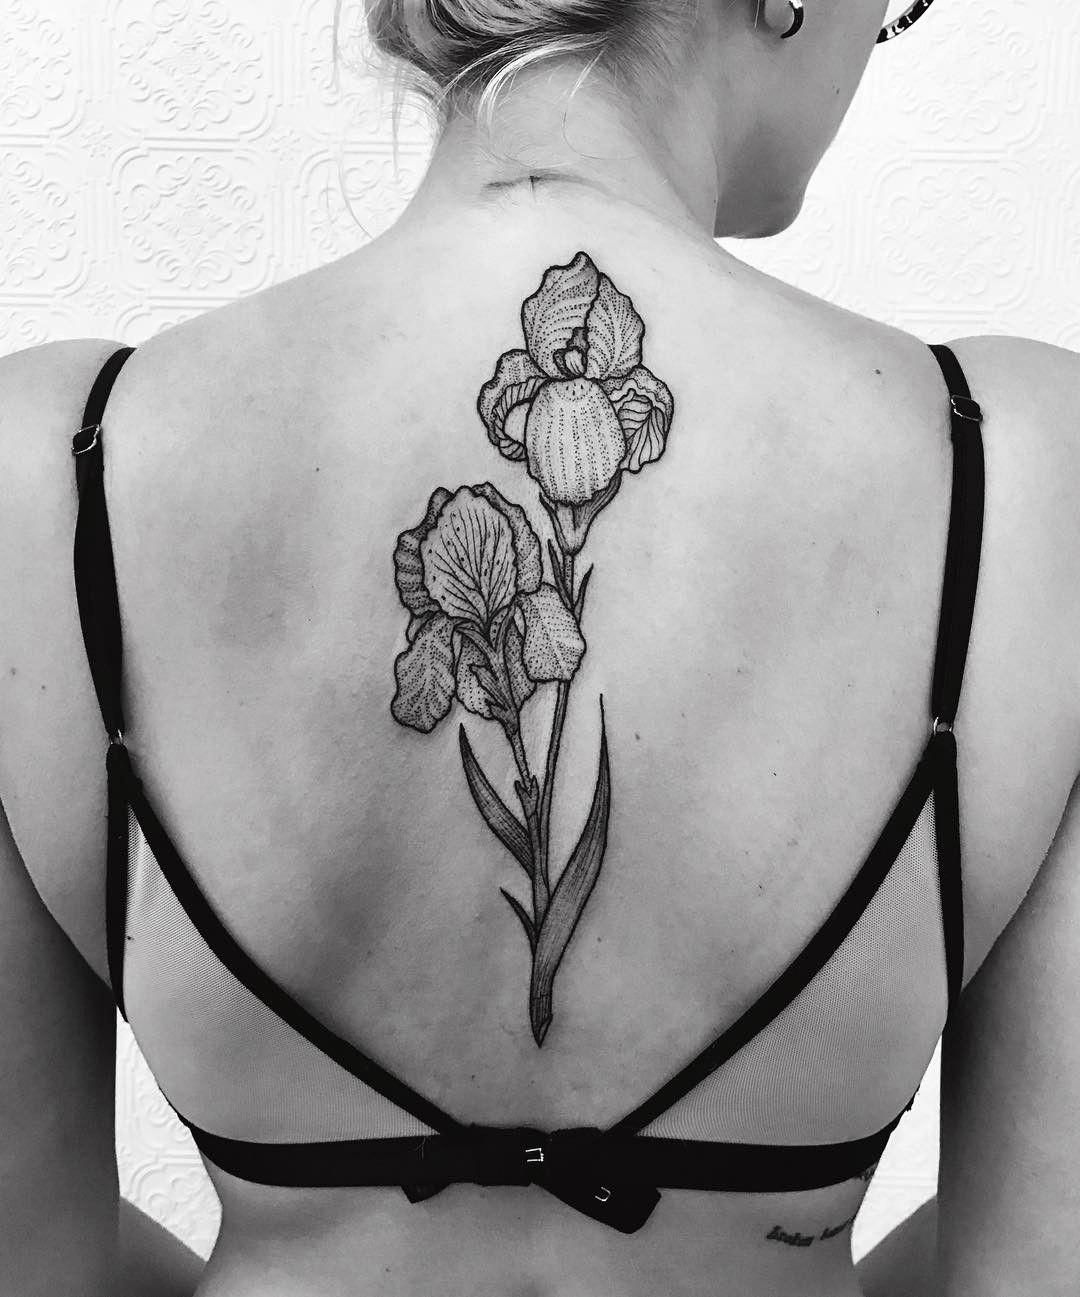 Anka Lavriv Black Iris Tattoo Brooklyn Ny Greatsleevetattoos Iris Tattoo Nature Tattoo Sleeve Iris Flower Tattoo